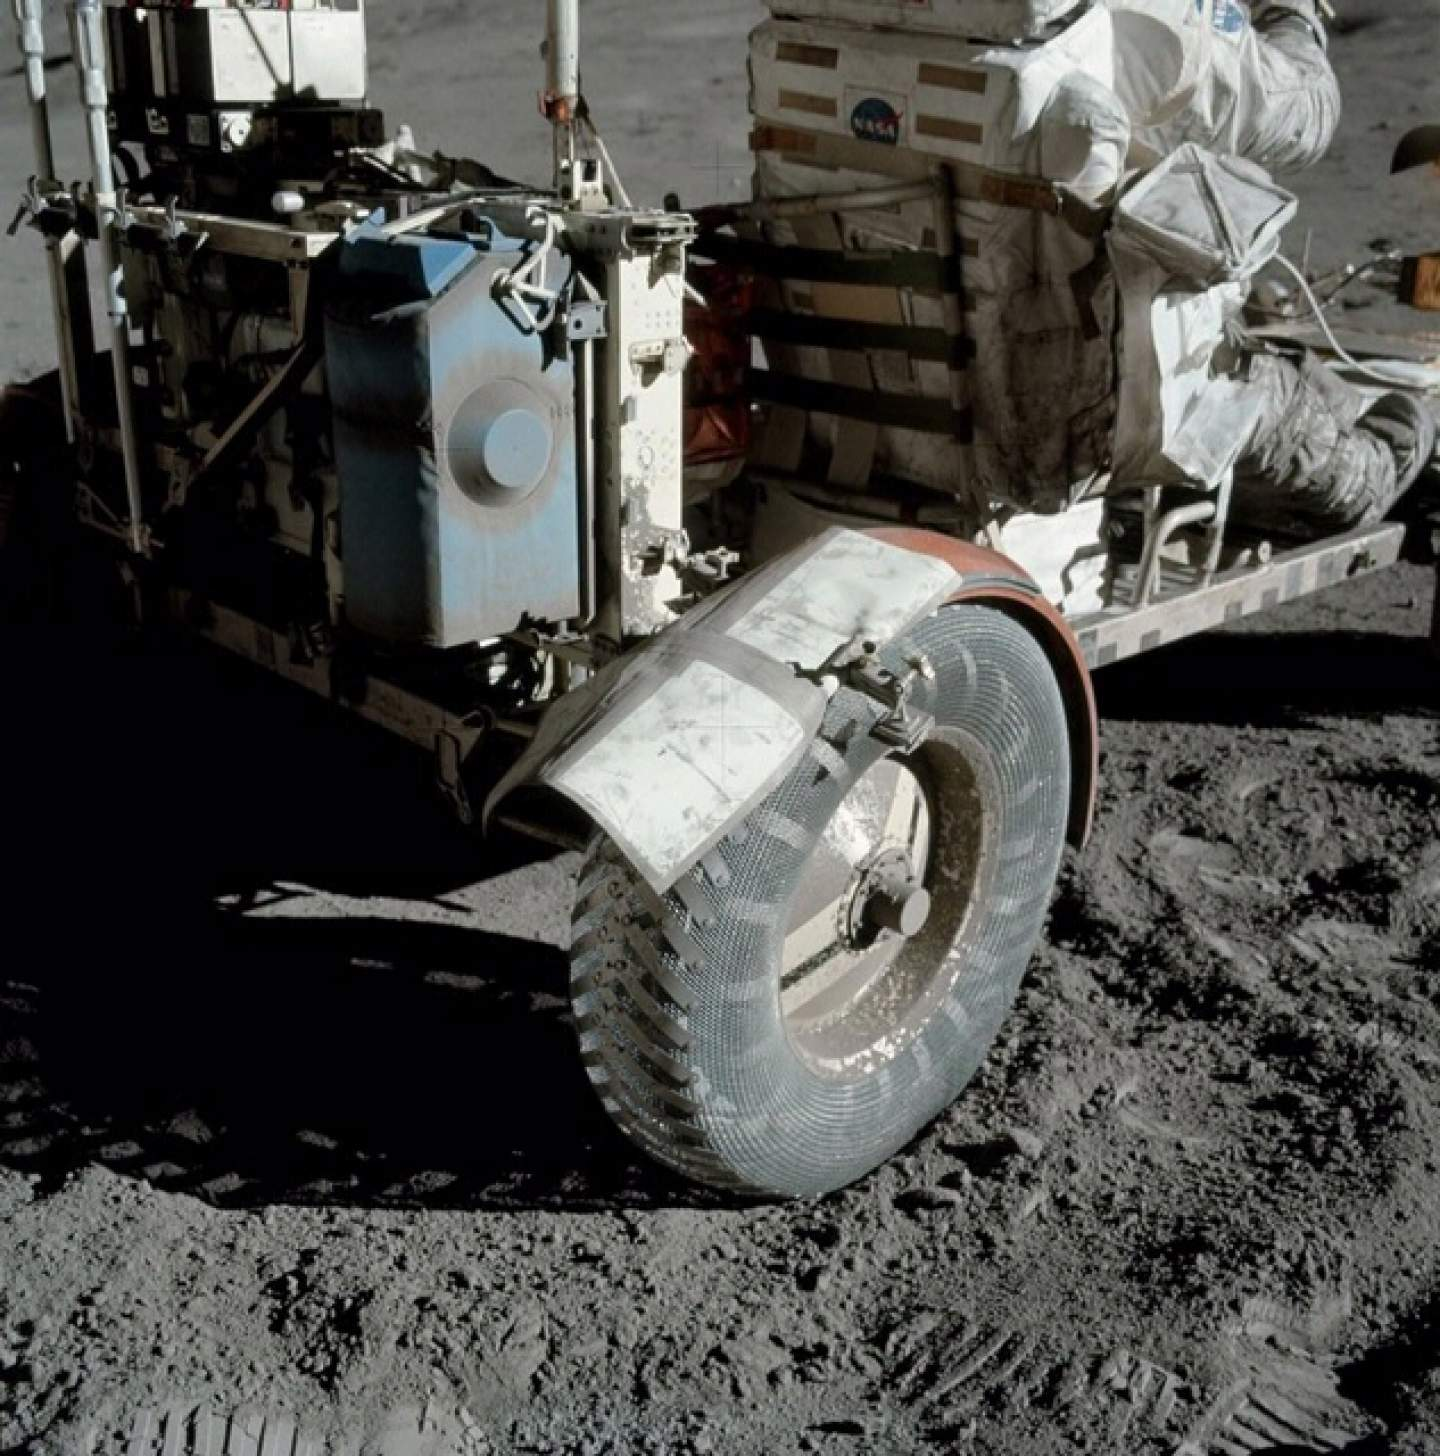 The broken fender replaced with a lunar map